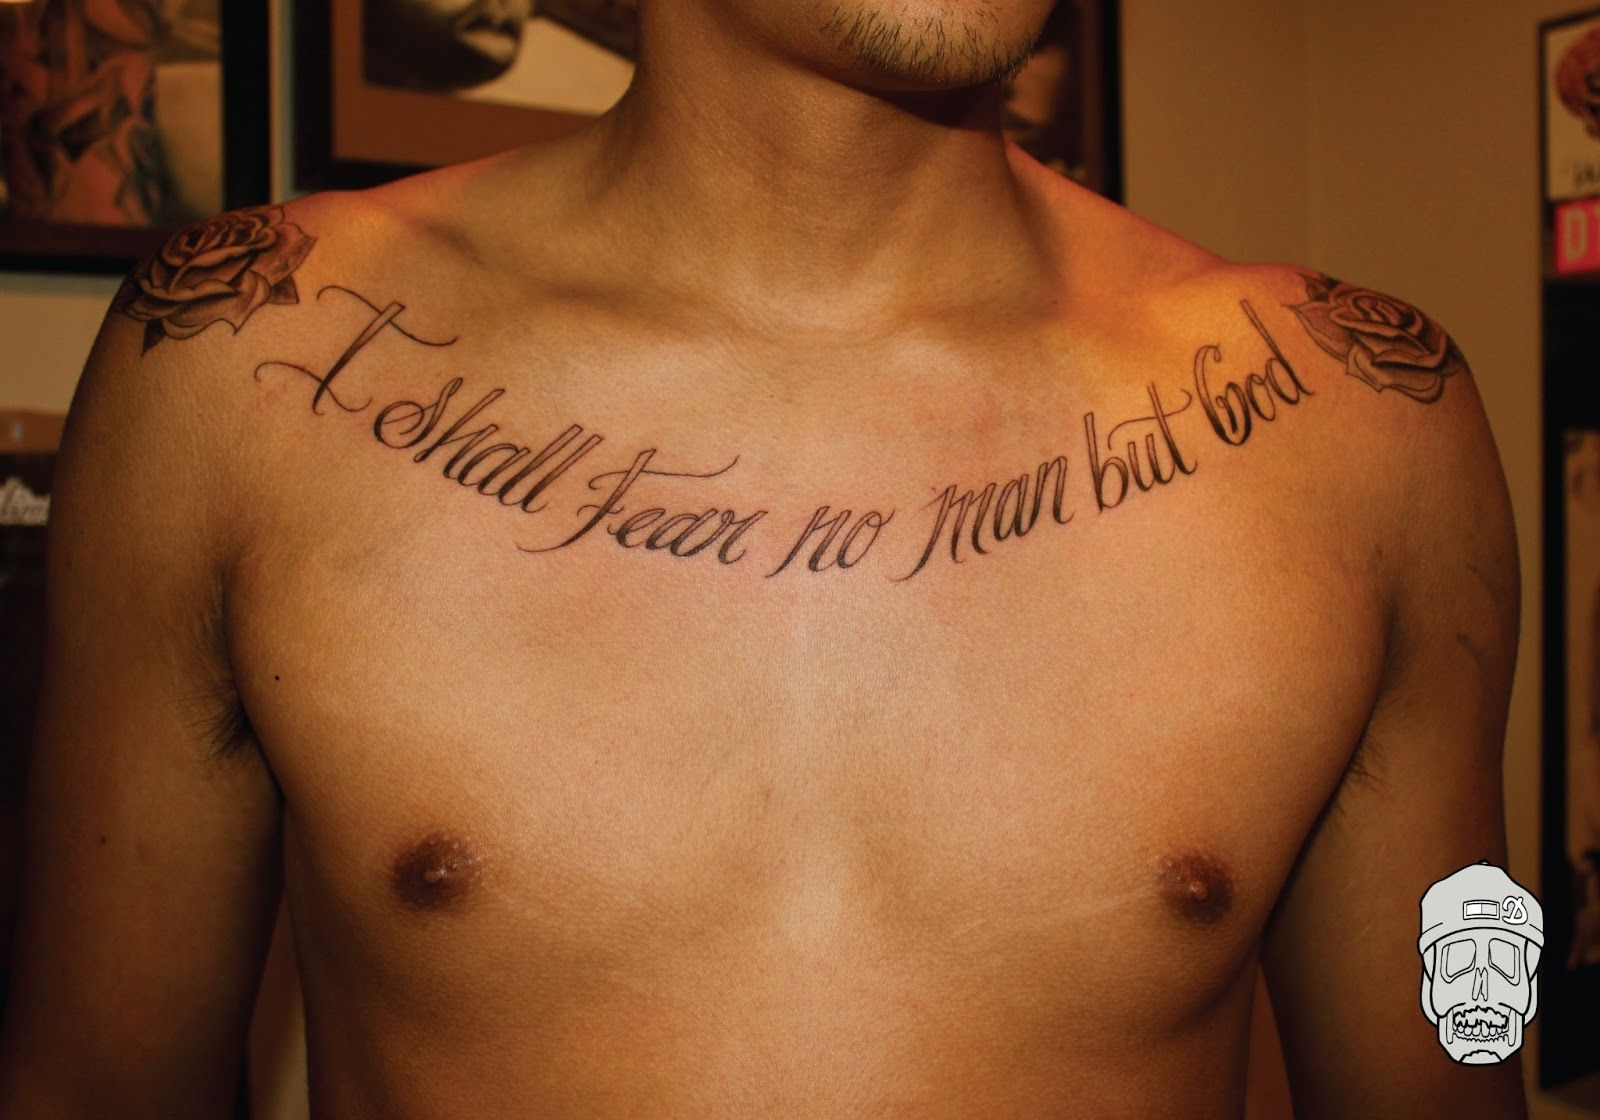 I shall fear no man but god chest tattoo tattoos and for Tattoo quotes about god